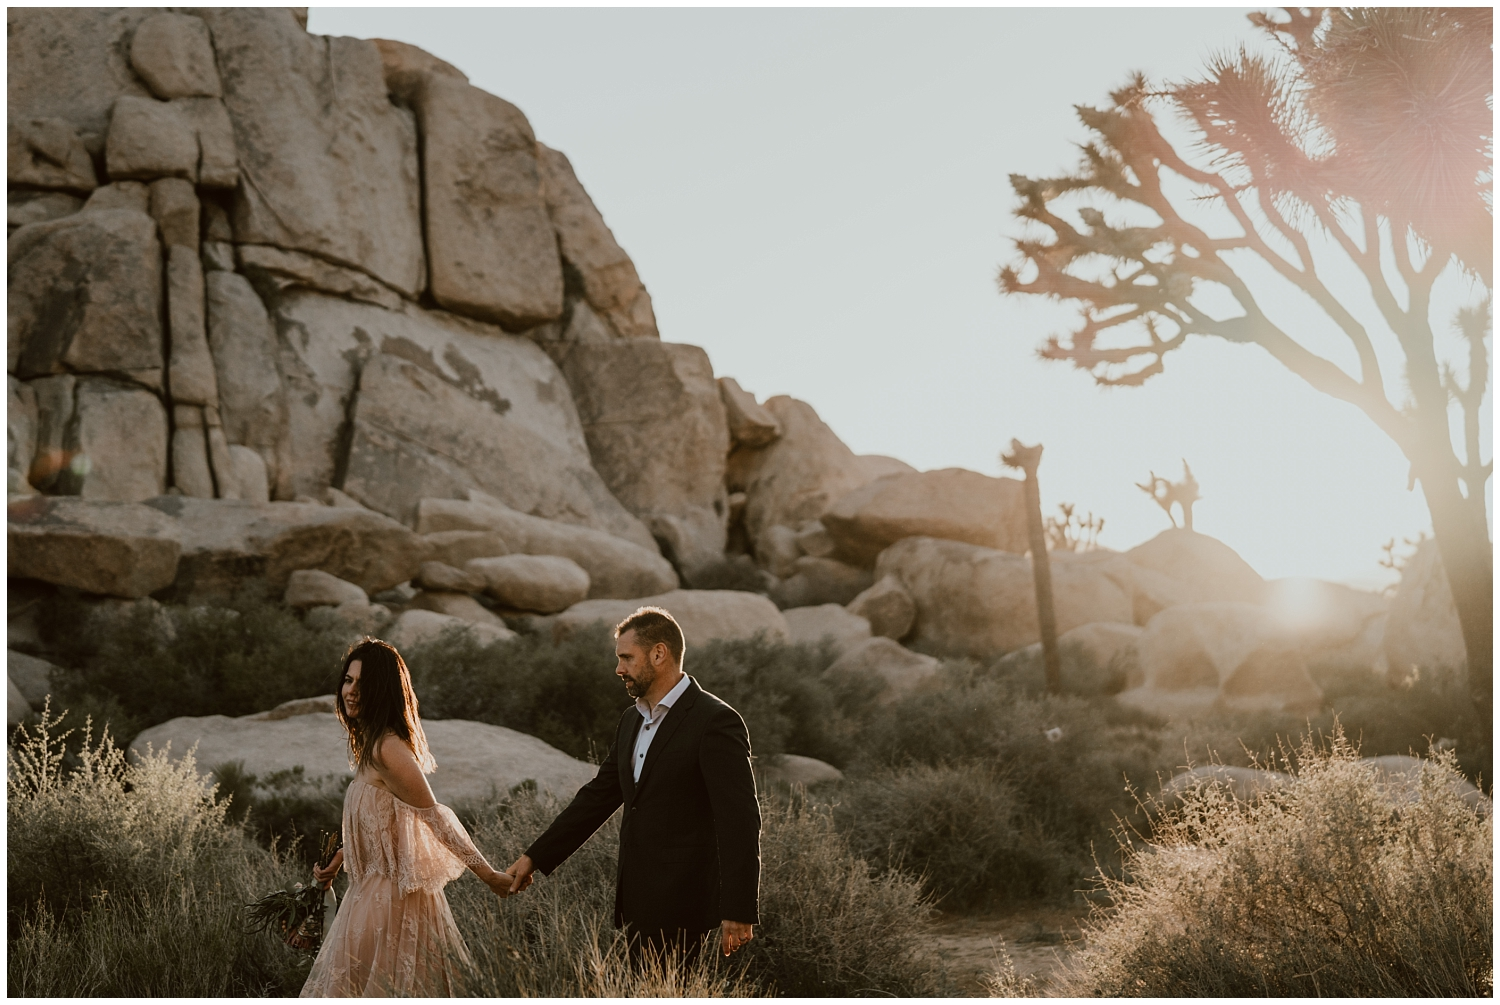 Cap-Rock-Joshua-Tree-Elopement-0073.jpg